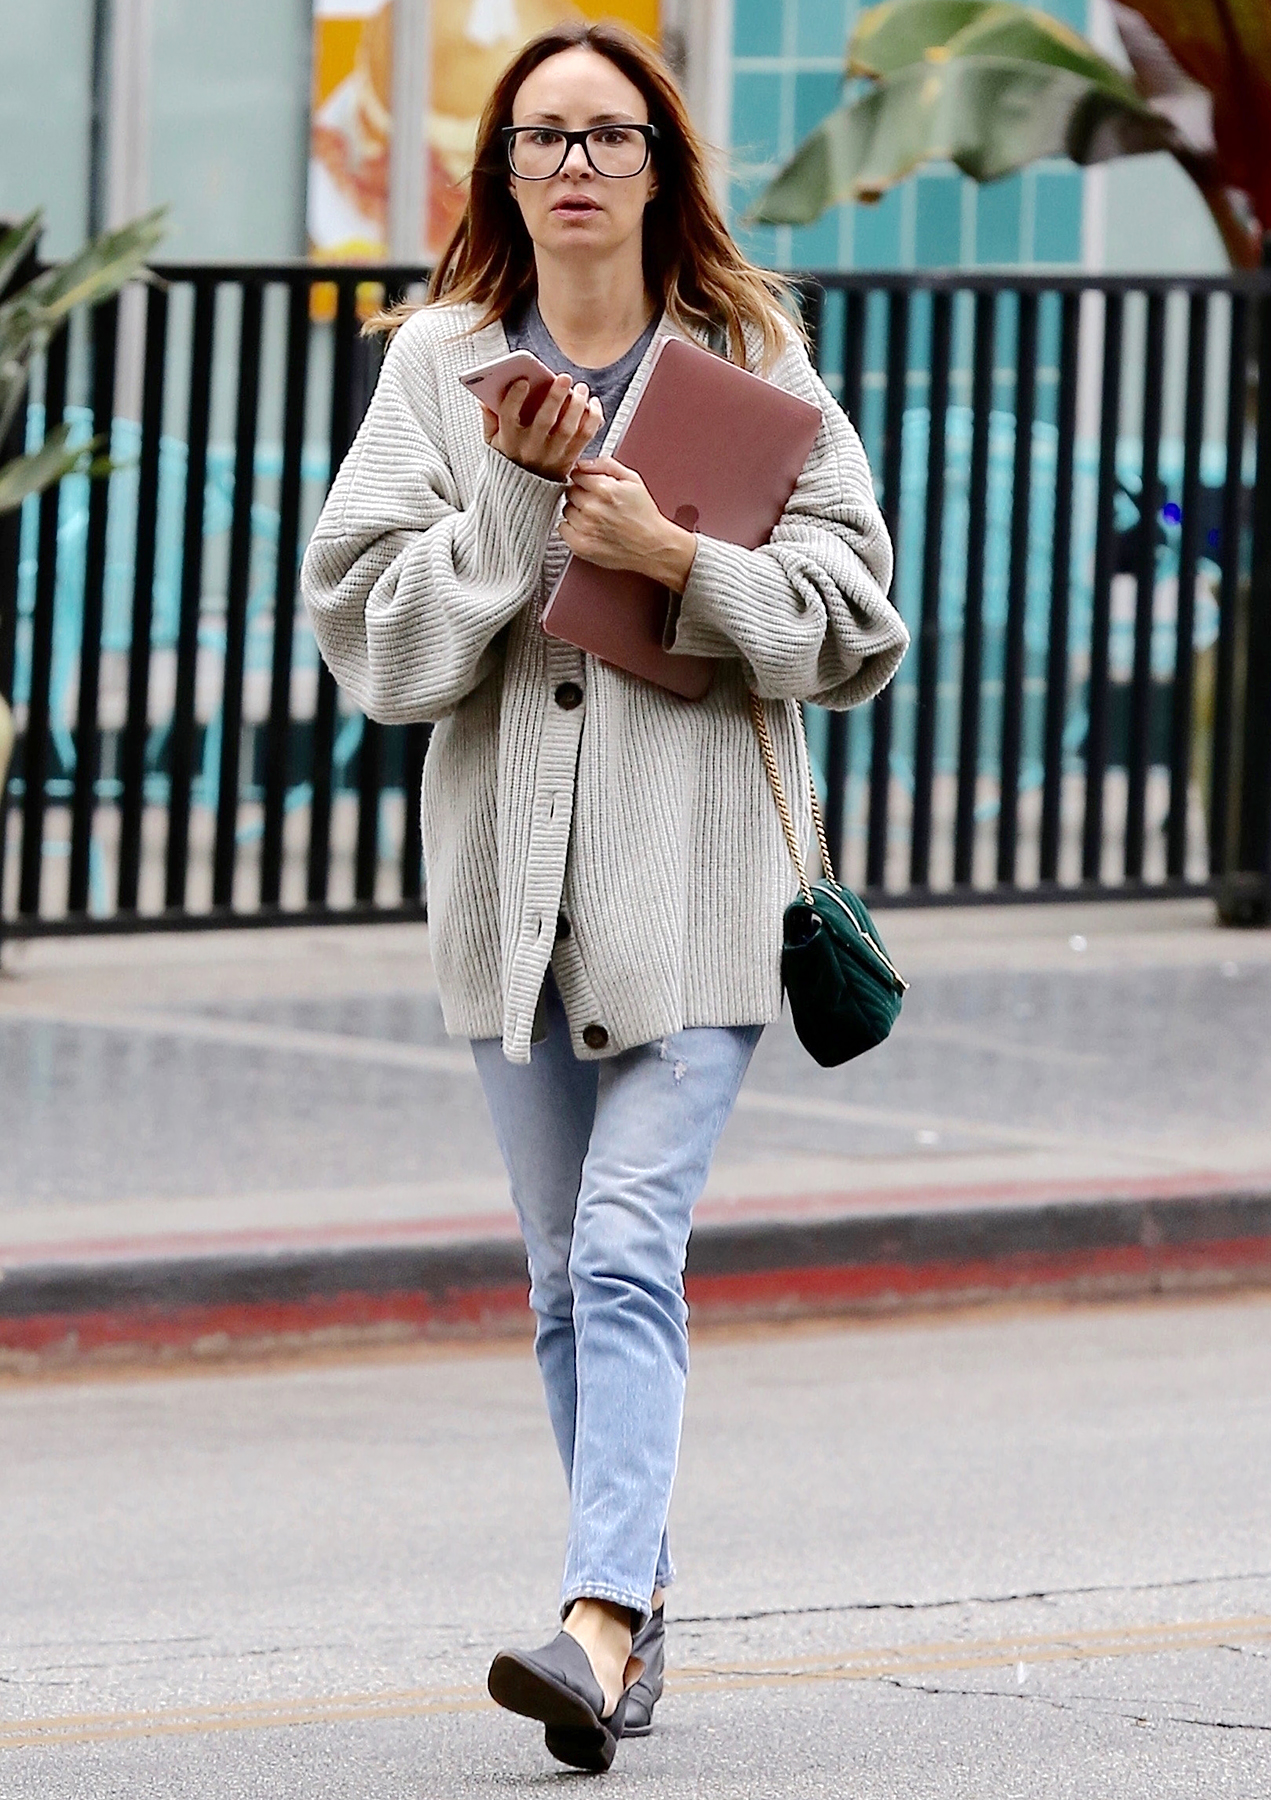 Celebs Now - Celebrity News & Gossip, Pictures, Fashion